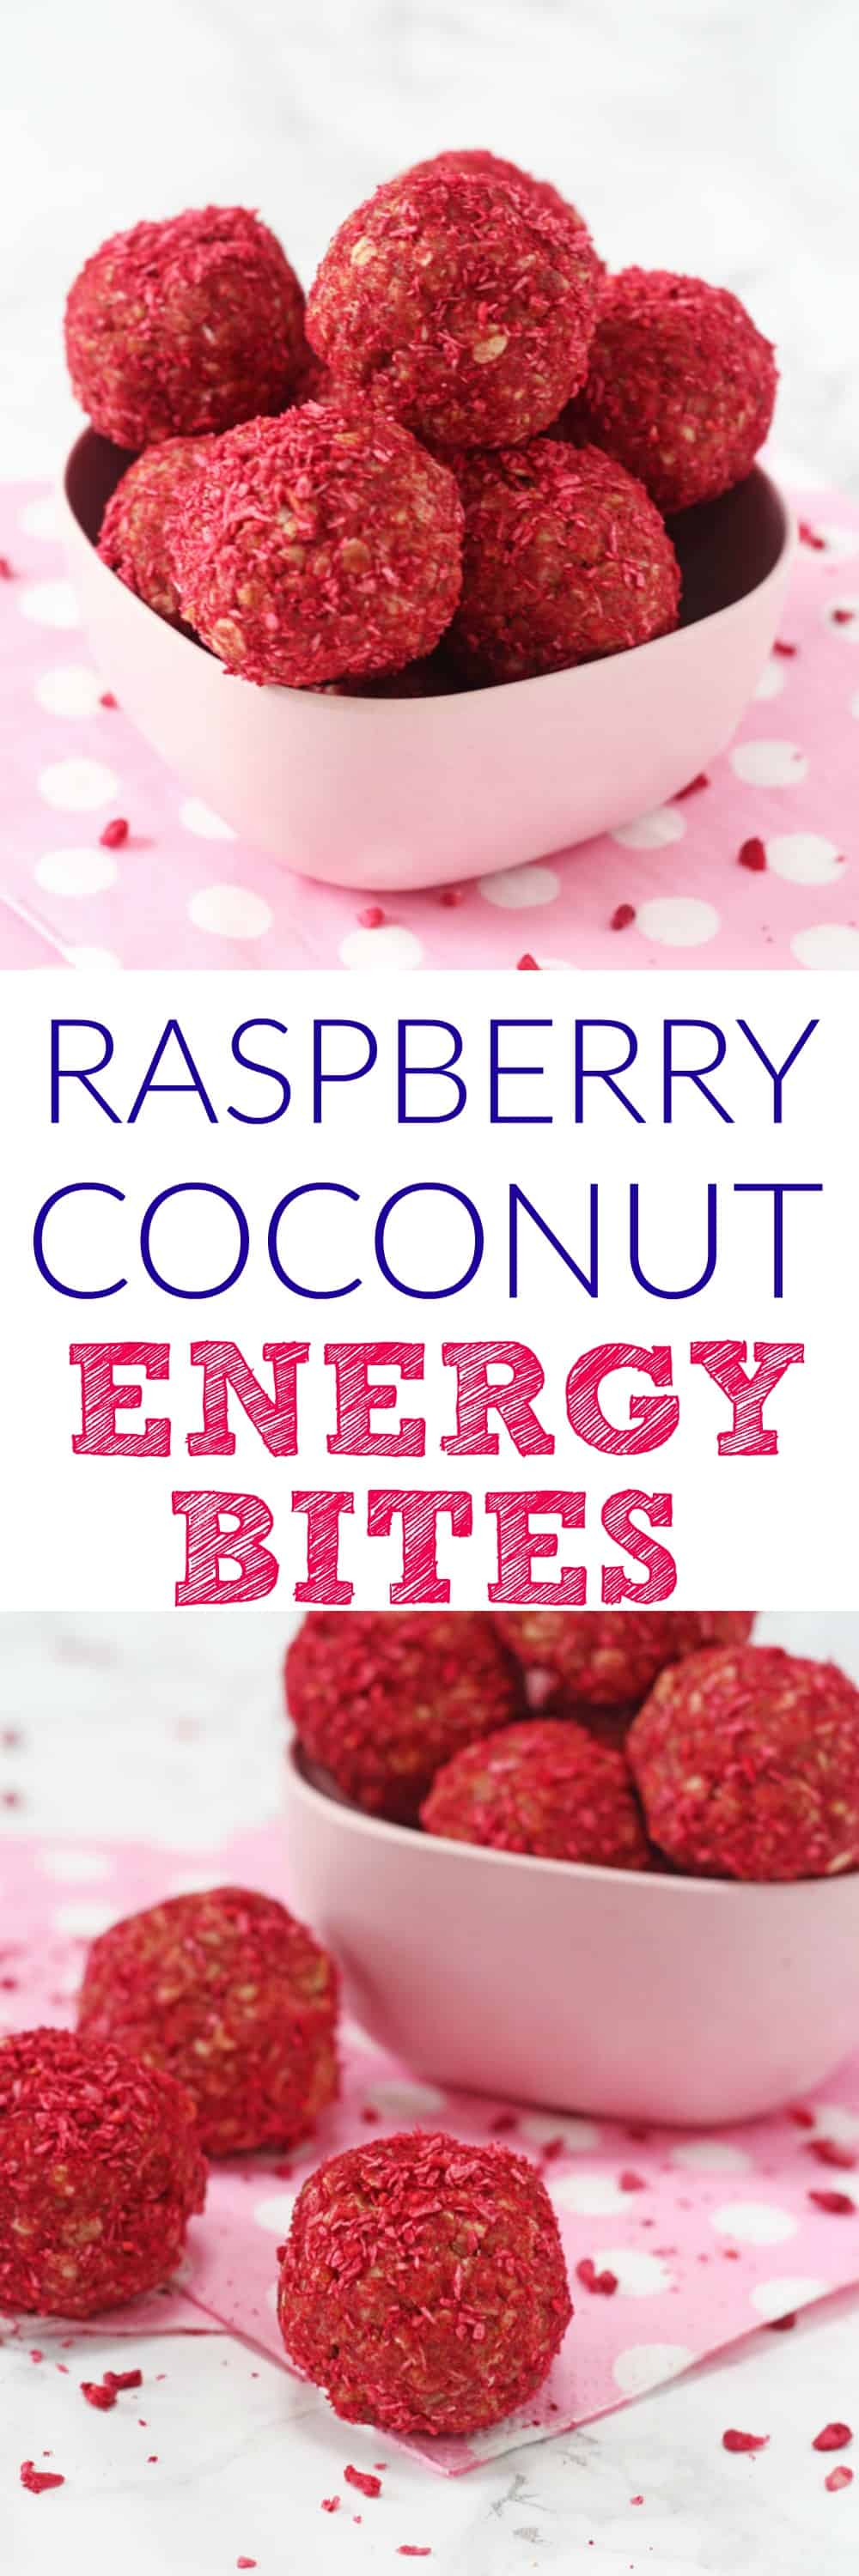 Delicious and healthy energy bites packed full of oats, peanut butter, freeze dried raspberries and shredded coconut. A tasty and nutritious snack that adults and kids will love!